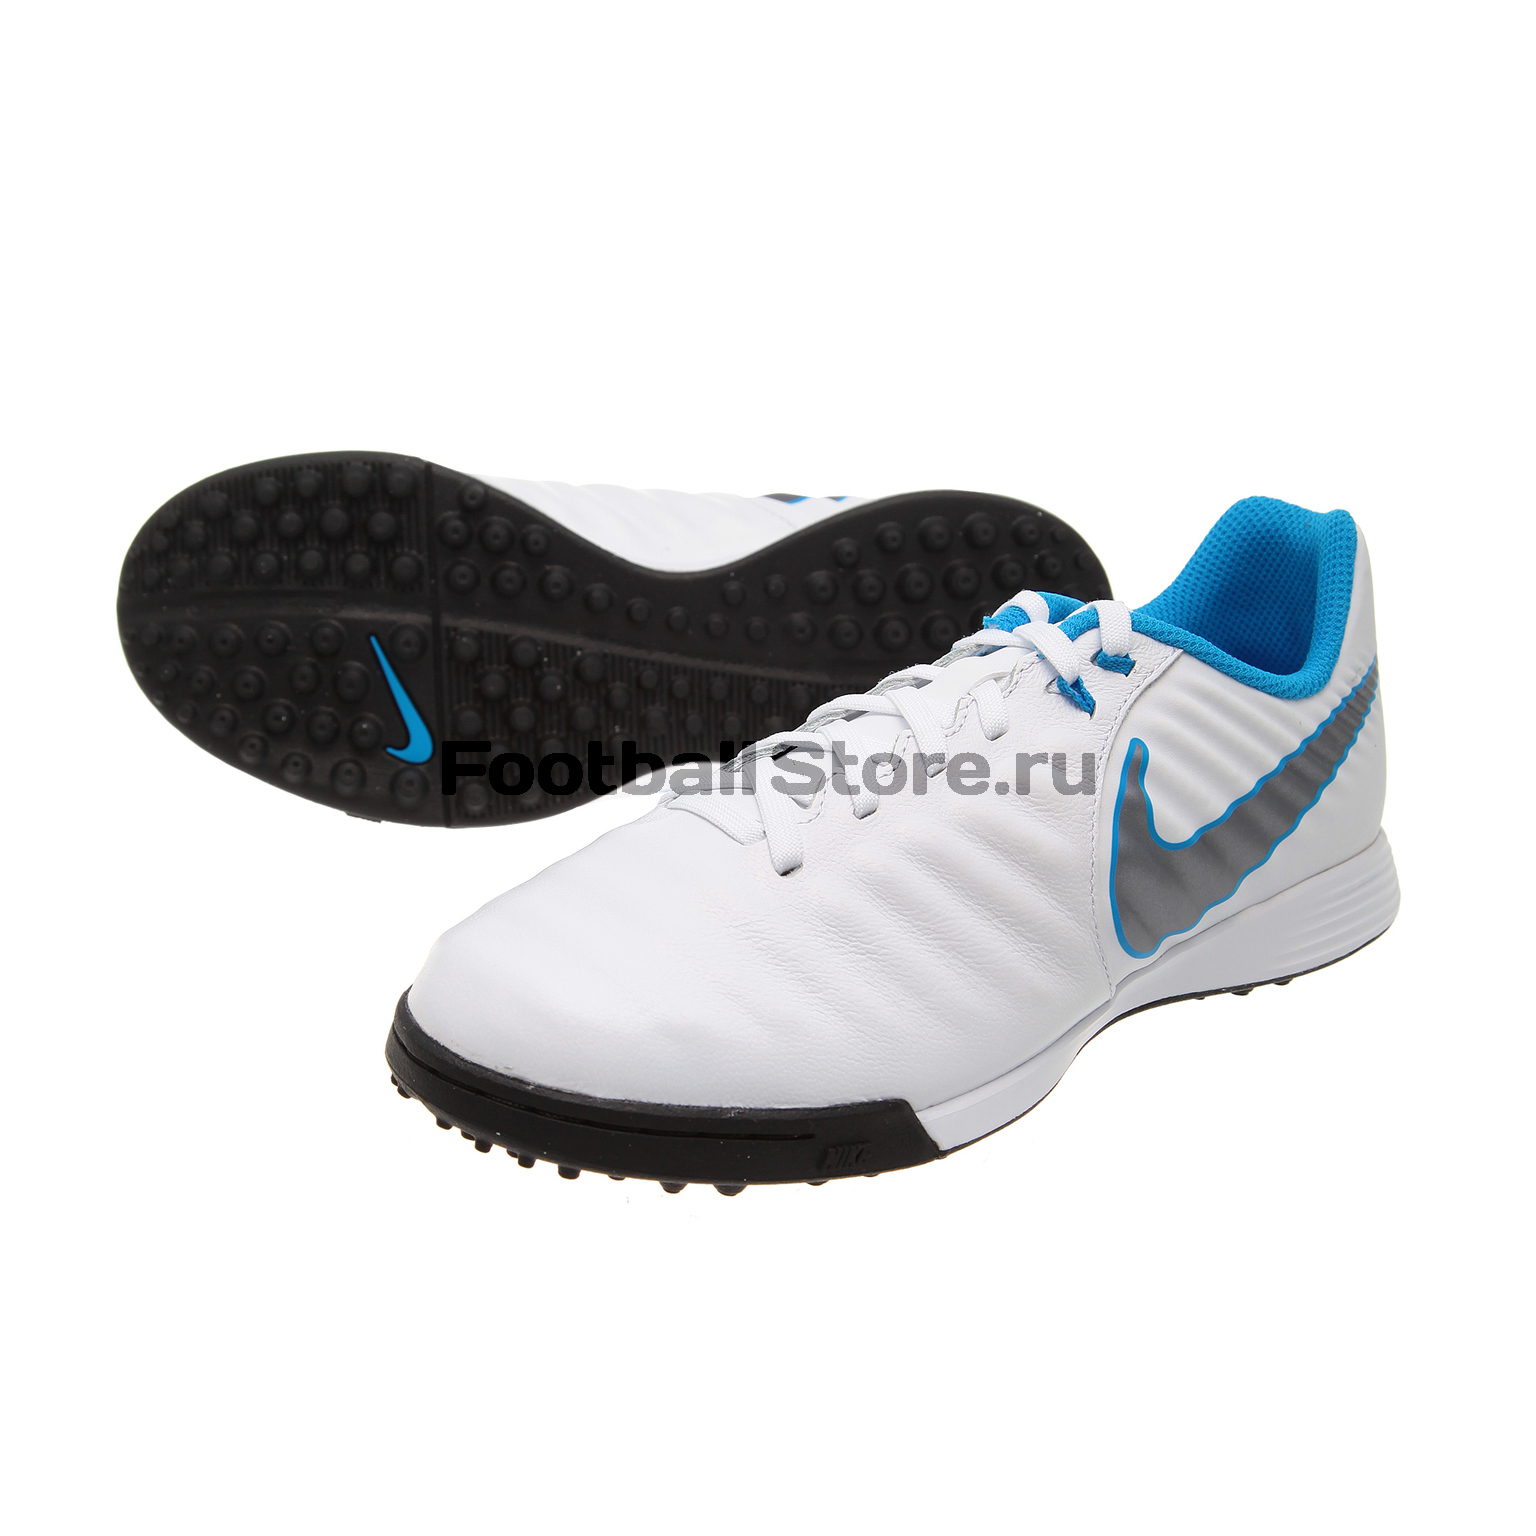 Шиповки детские Nike Legend X Academy TF AH7259-107 бутсы nike шиповки nike jr tiempox legend vi tf 819191 018